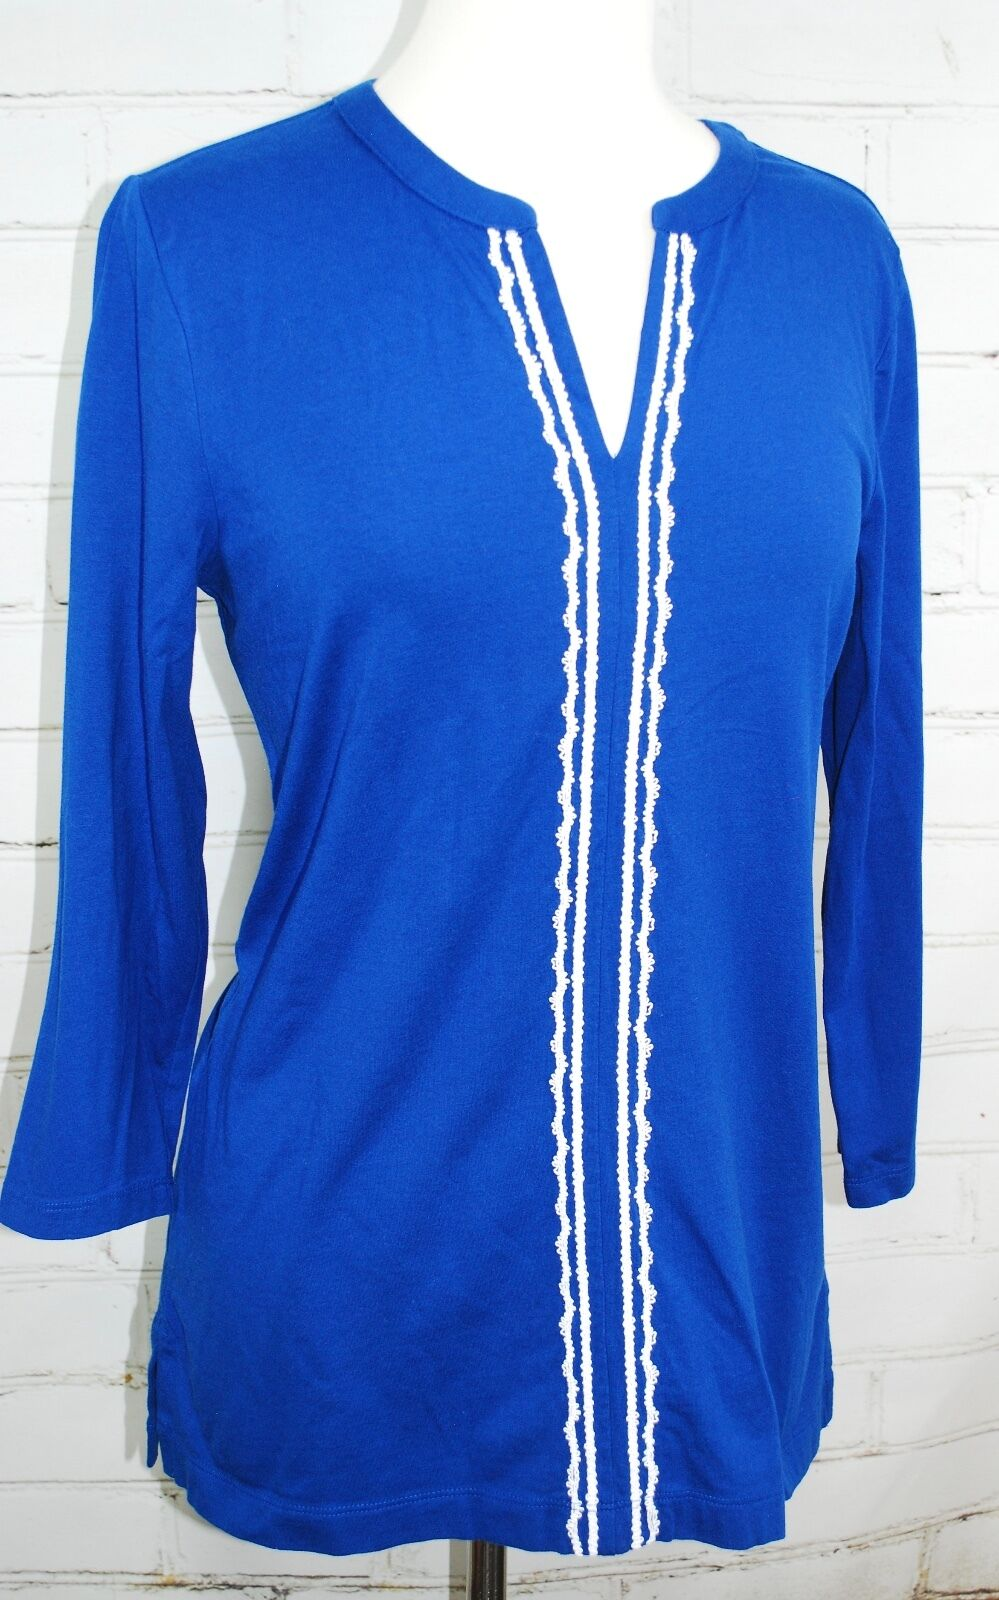 Lands' End Cotton Knit Tunic Top Swimsuit Cover-up bluee Size M 10-12